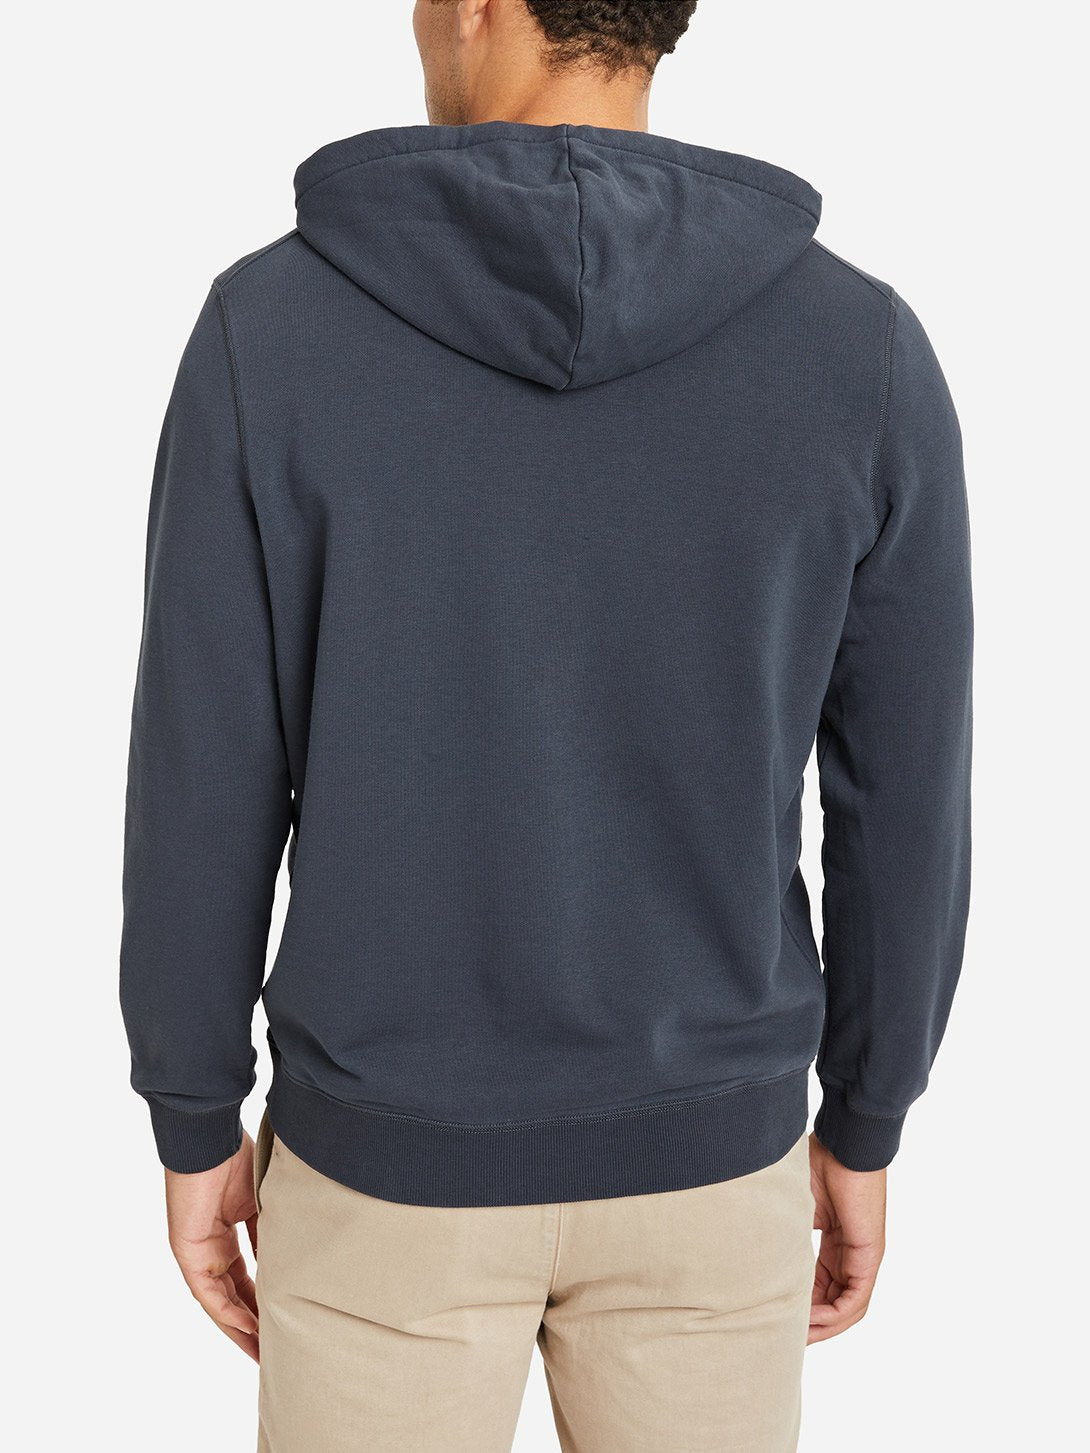 CHARCOAL GREY zip up hoodie for men by ons clothing